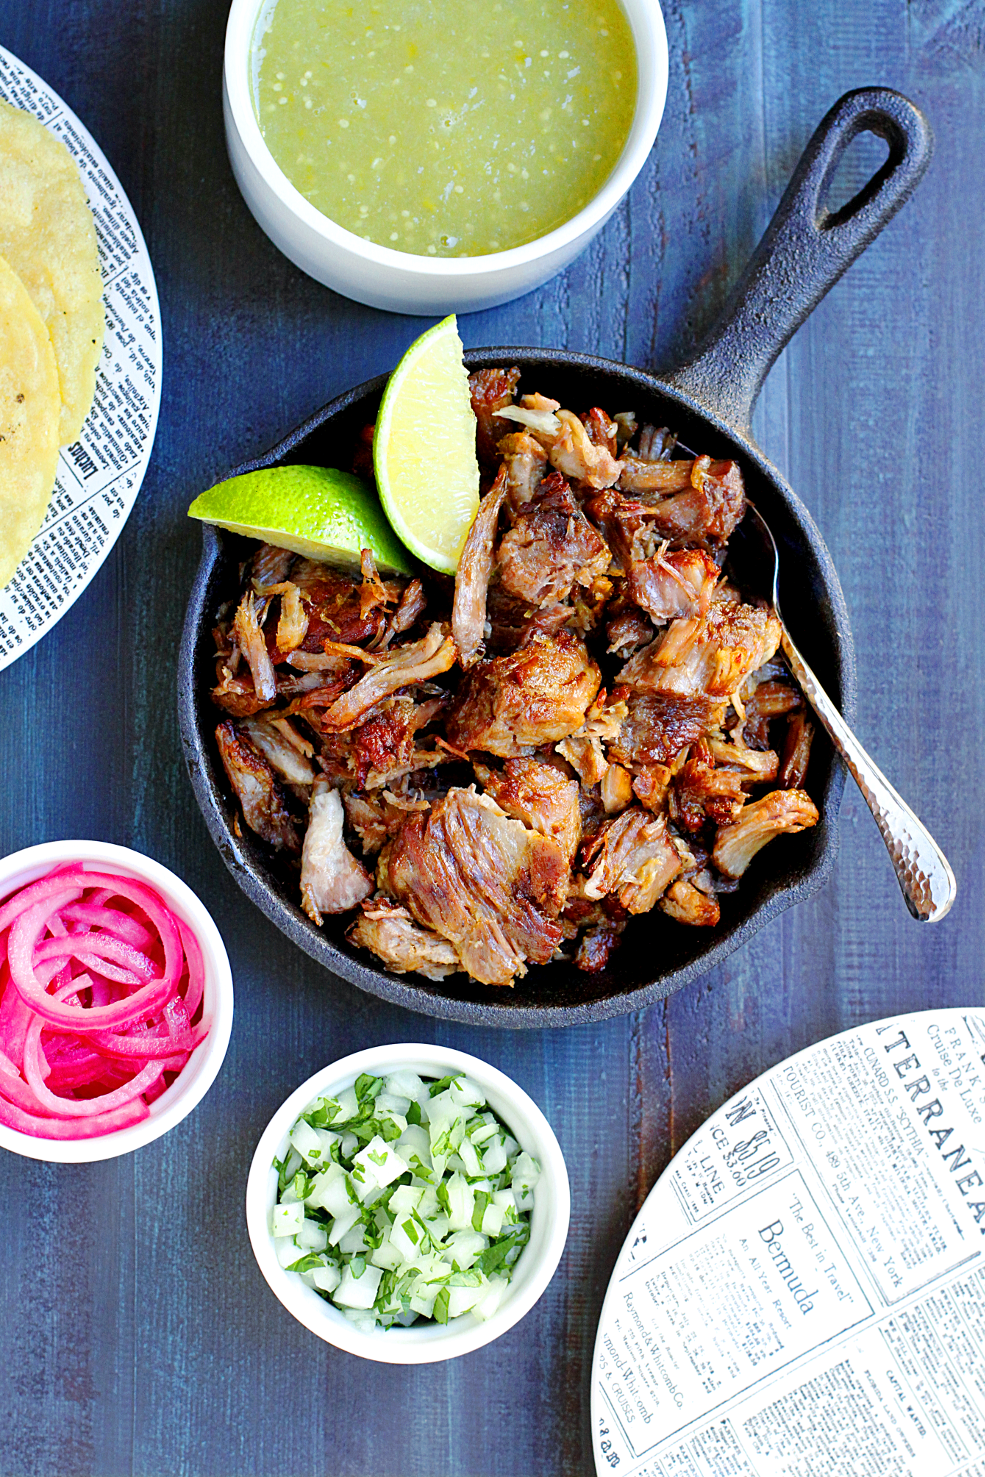 Image of slow-roasted carnitas with salsa verde.